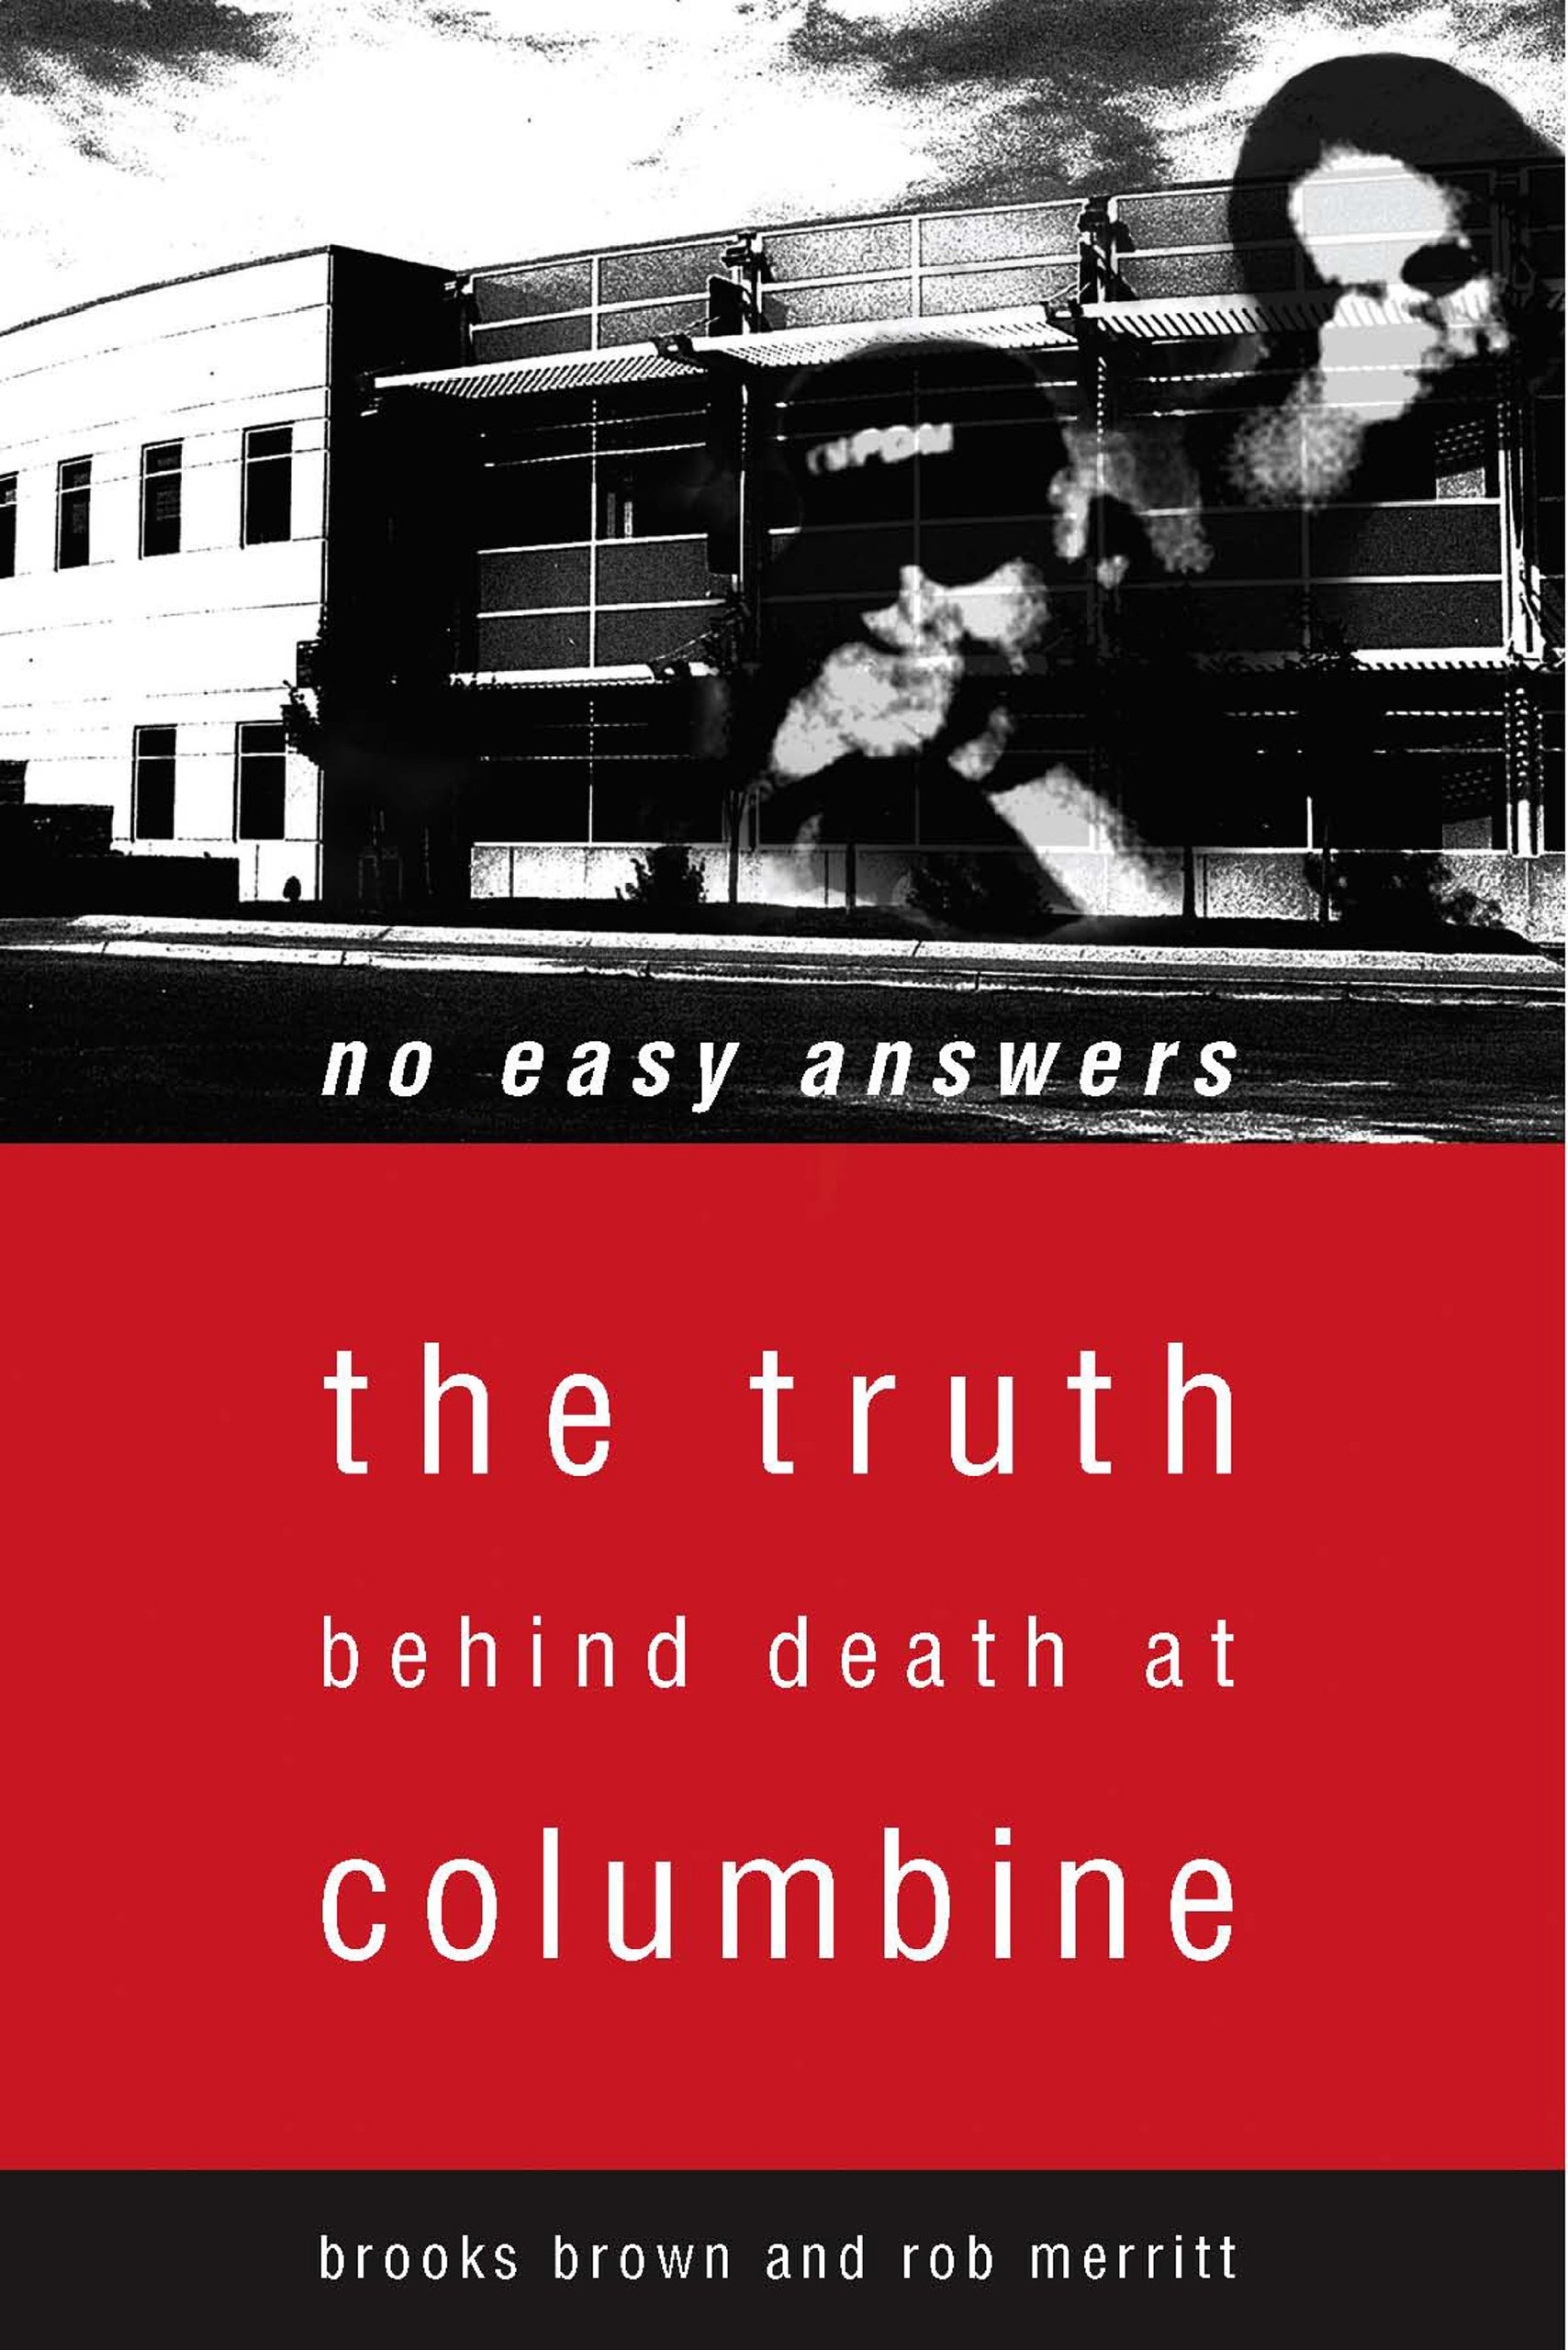 No Easy Answers: The Truth Behind Death at Columbine: The Truth Behind the Murders at Columbine: Amazon.es: Brooks Brown, Rob Merritt: Libros en idiomas ...